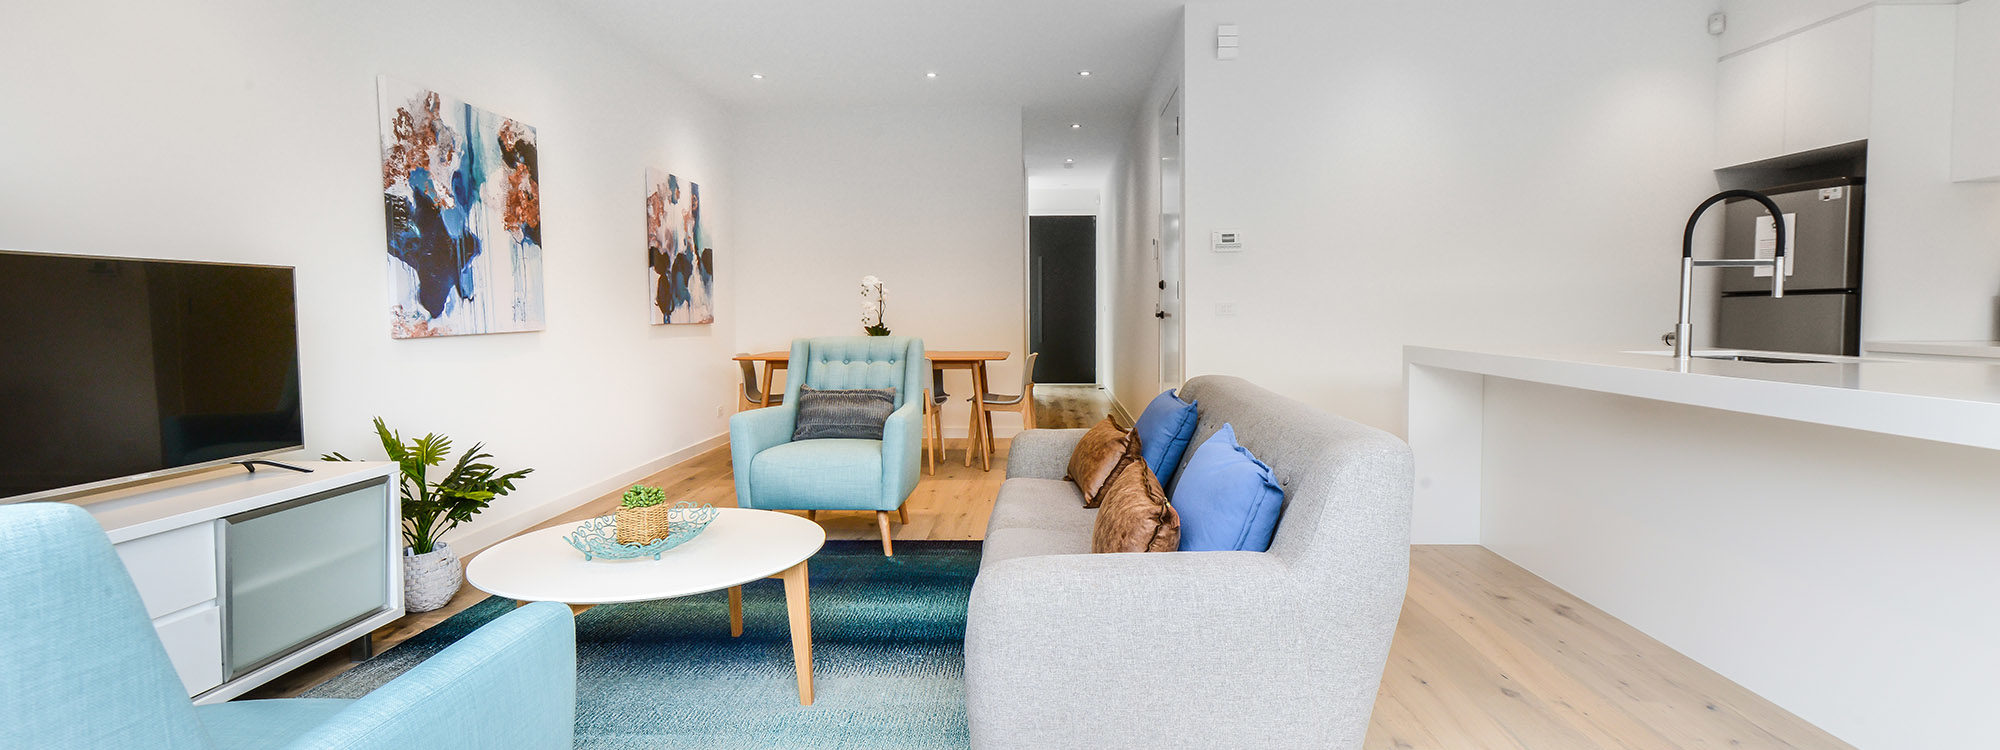 Murrumbeena Place 2 - Murrumbeena - Living Area b